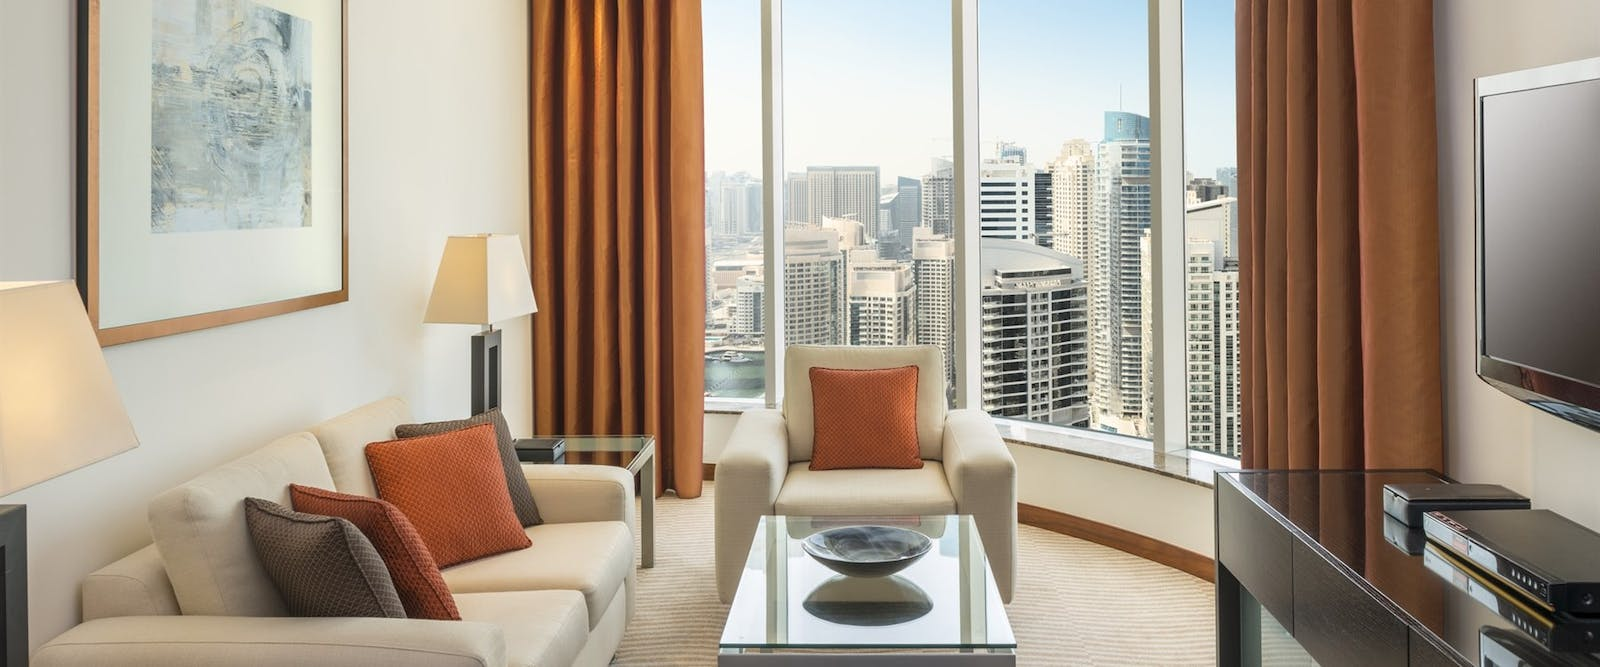 Deluxe Suite Living Room at Grosvenor House, Dubai